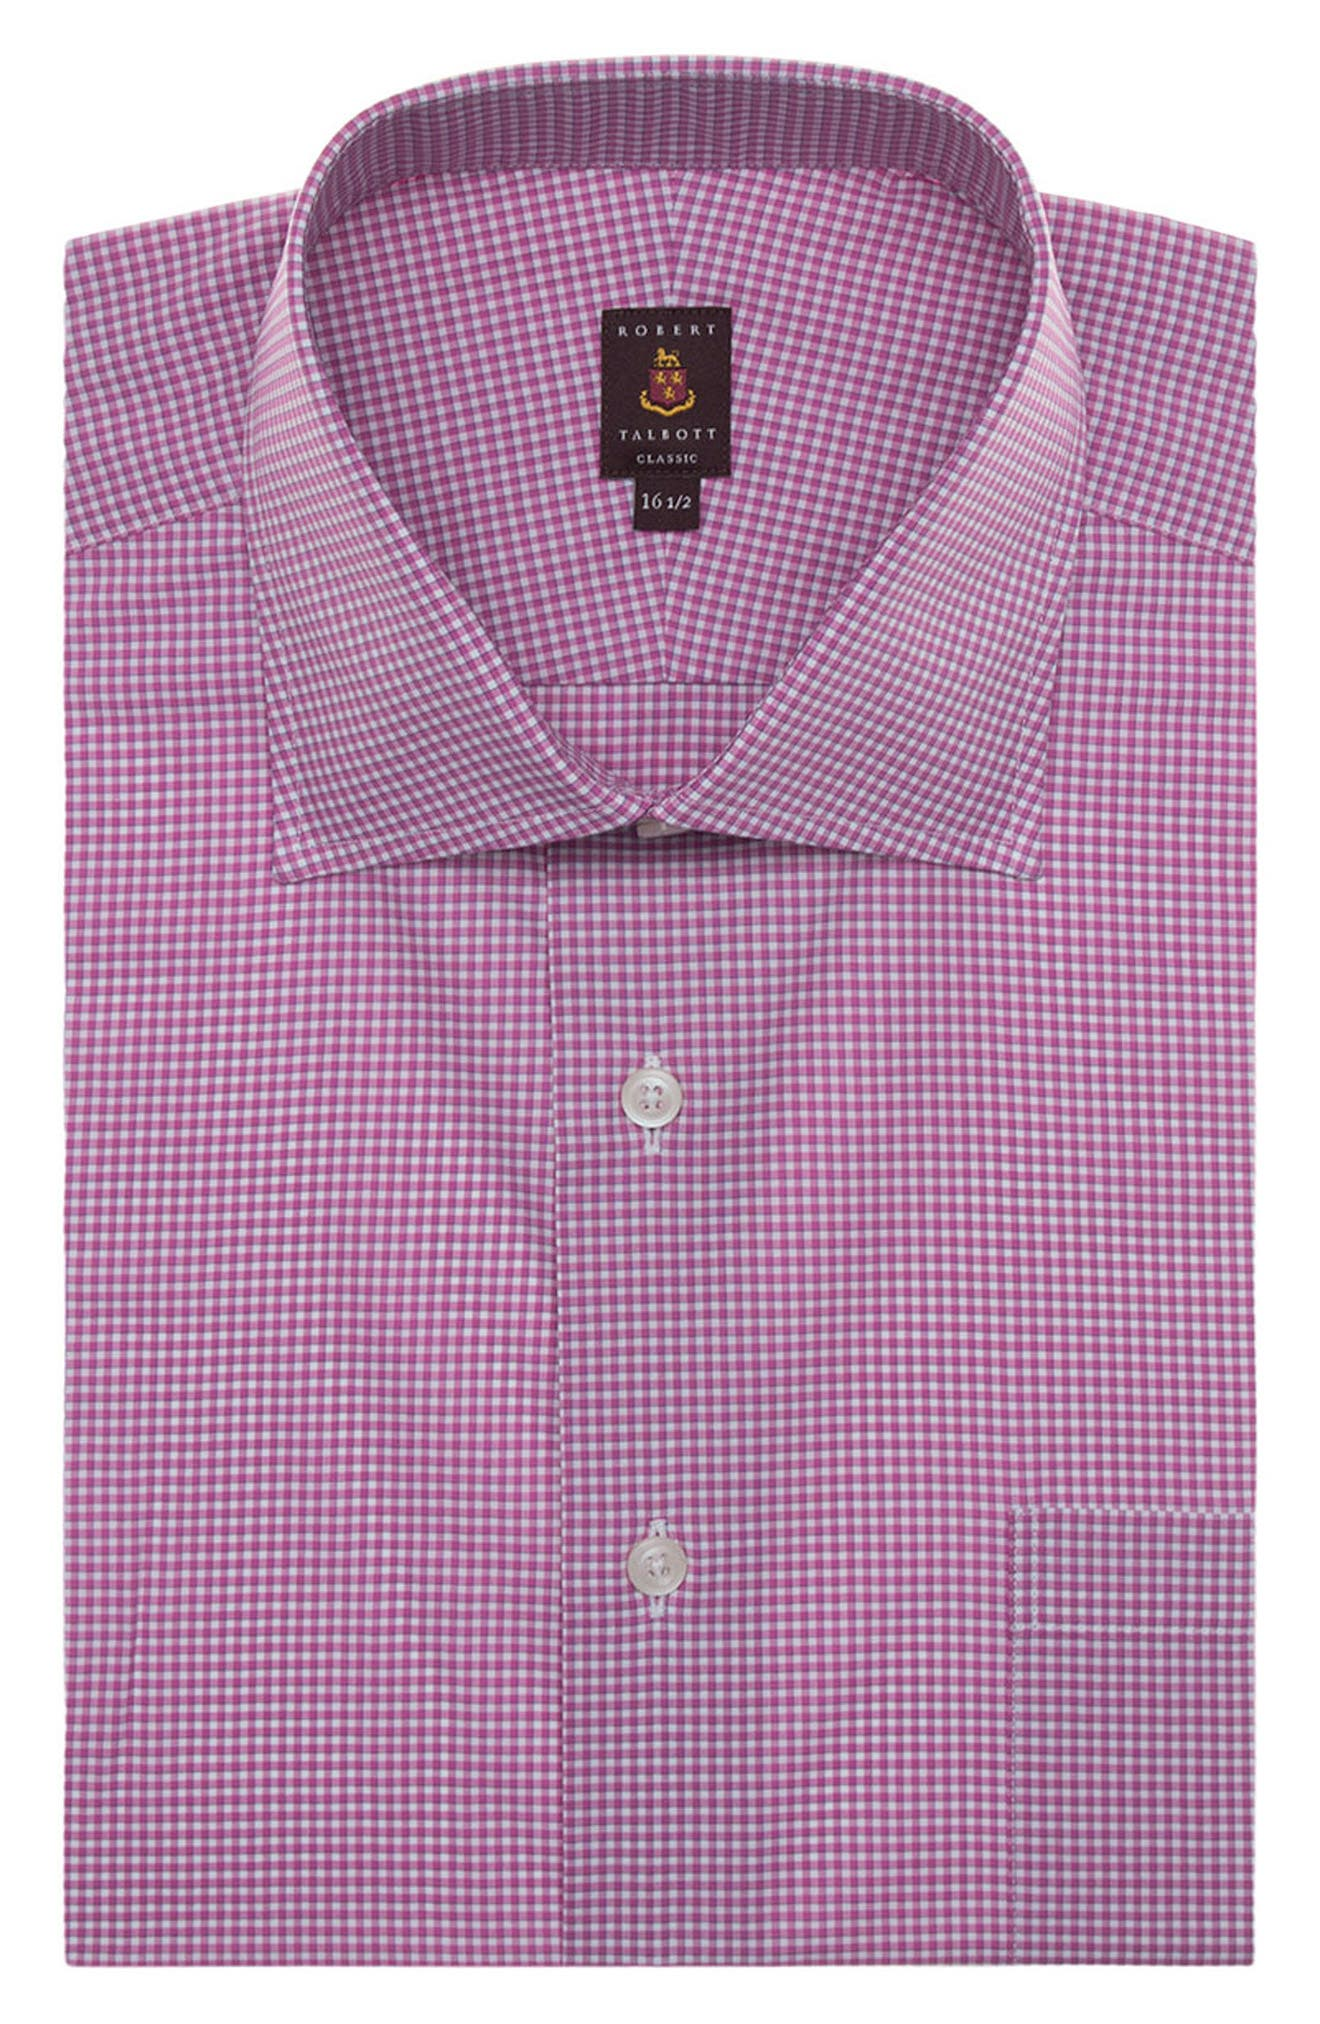 Tailored Fit Check Dress Shirt,                         Main,                         color, Fuchsia